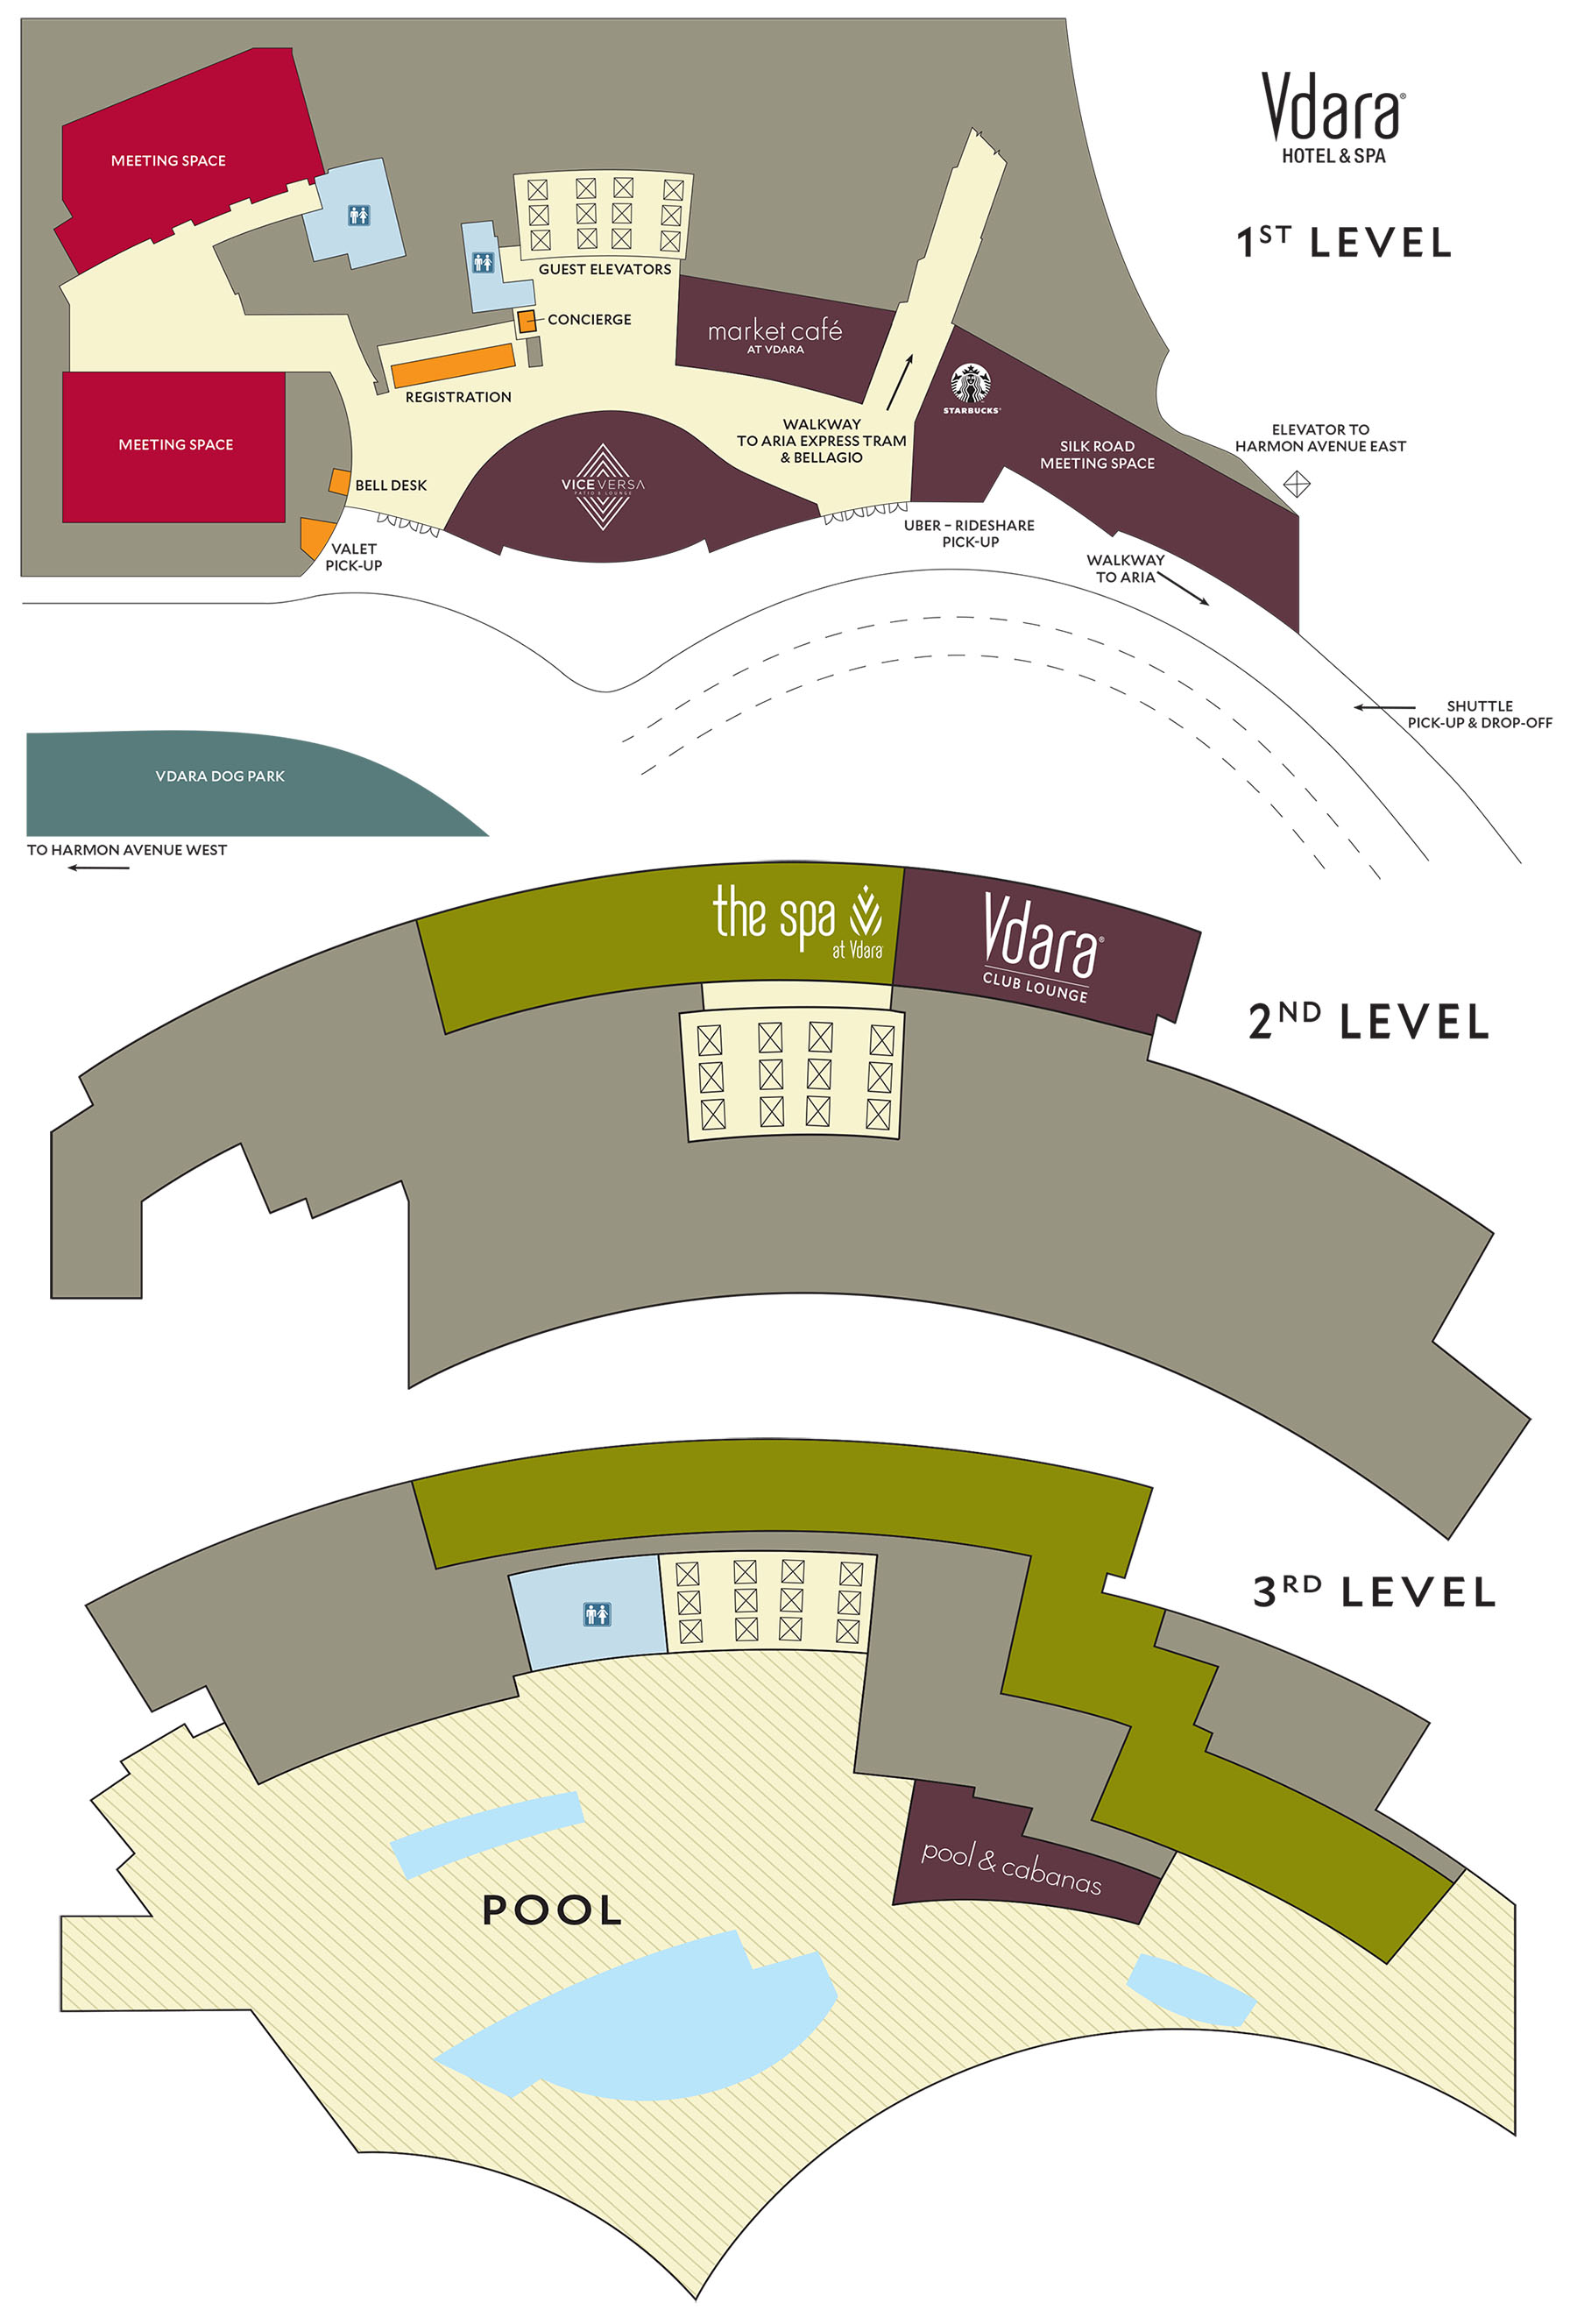 Vdara Casino Property Map Amp Floor Plans Las Vegas